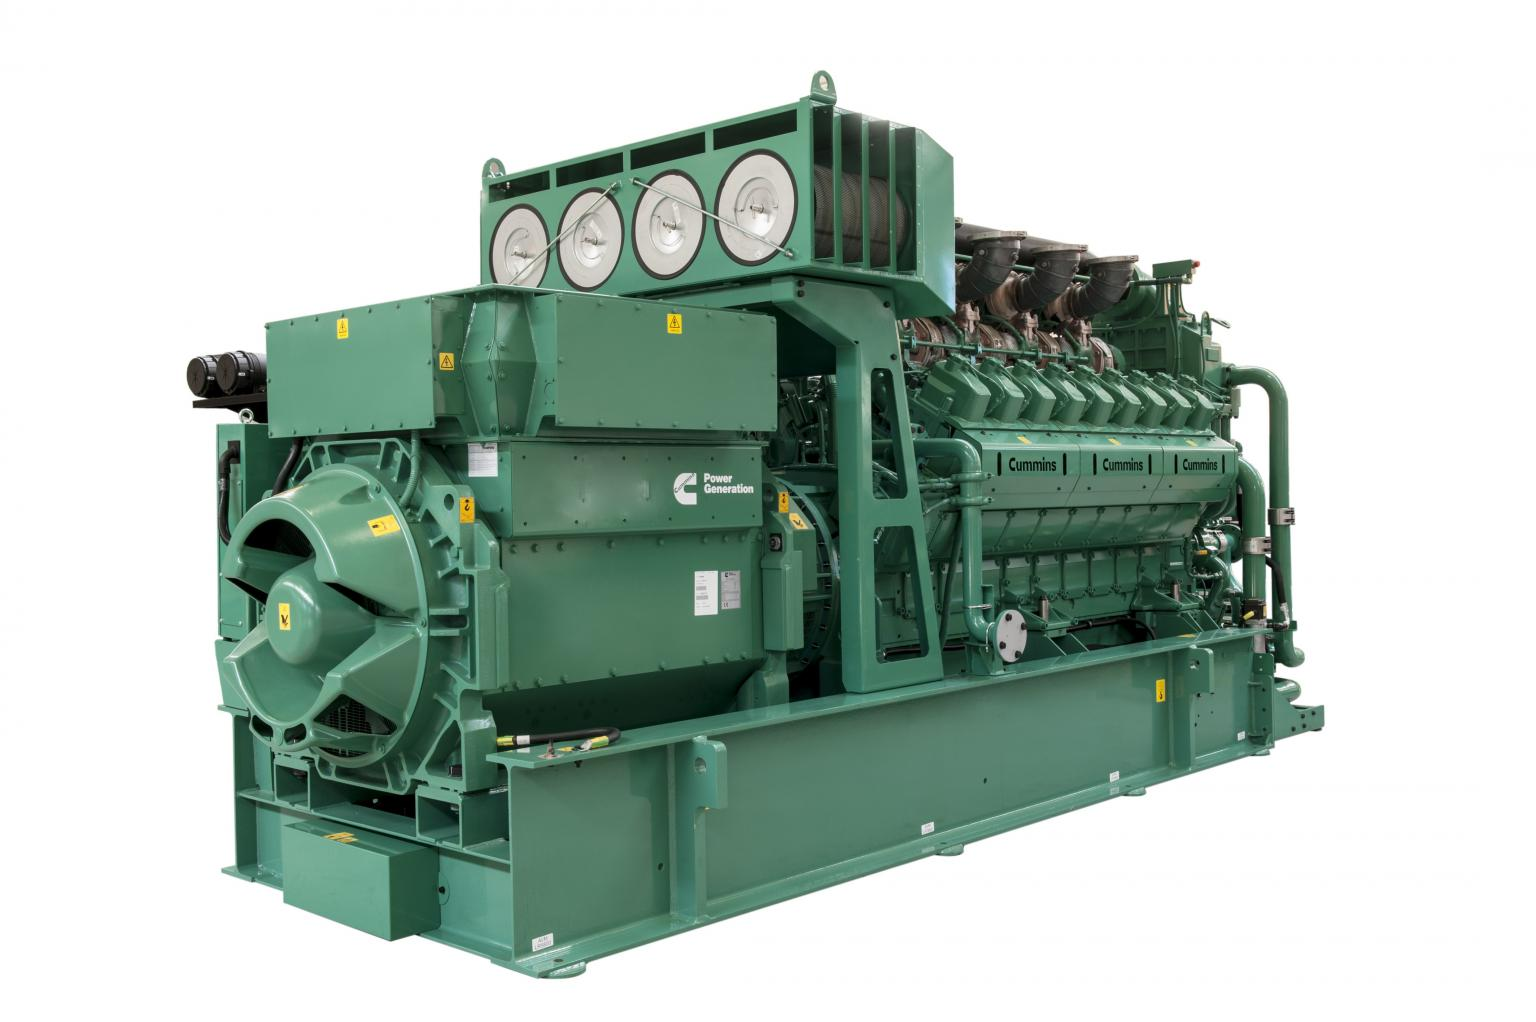 Cummins Power Generation launches new lean-burn gas generator set product line. This is the latest 2MWe model